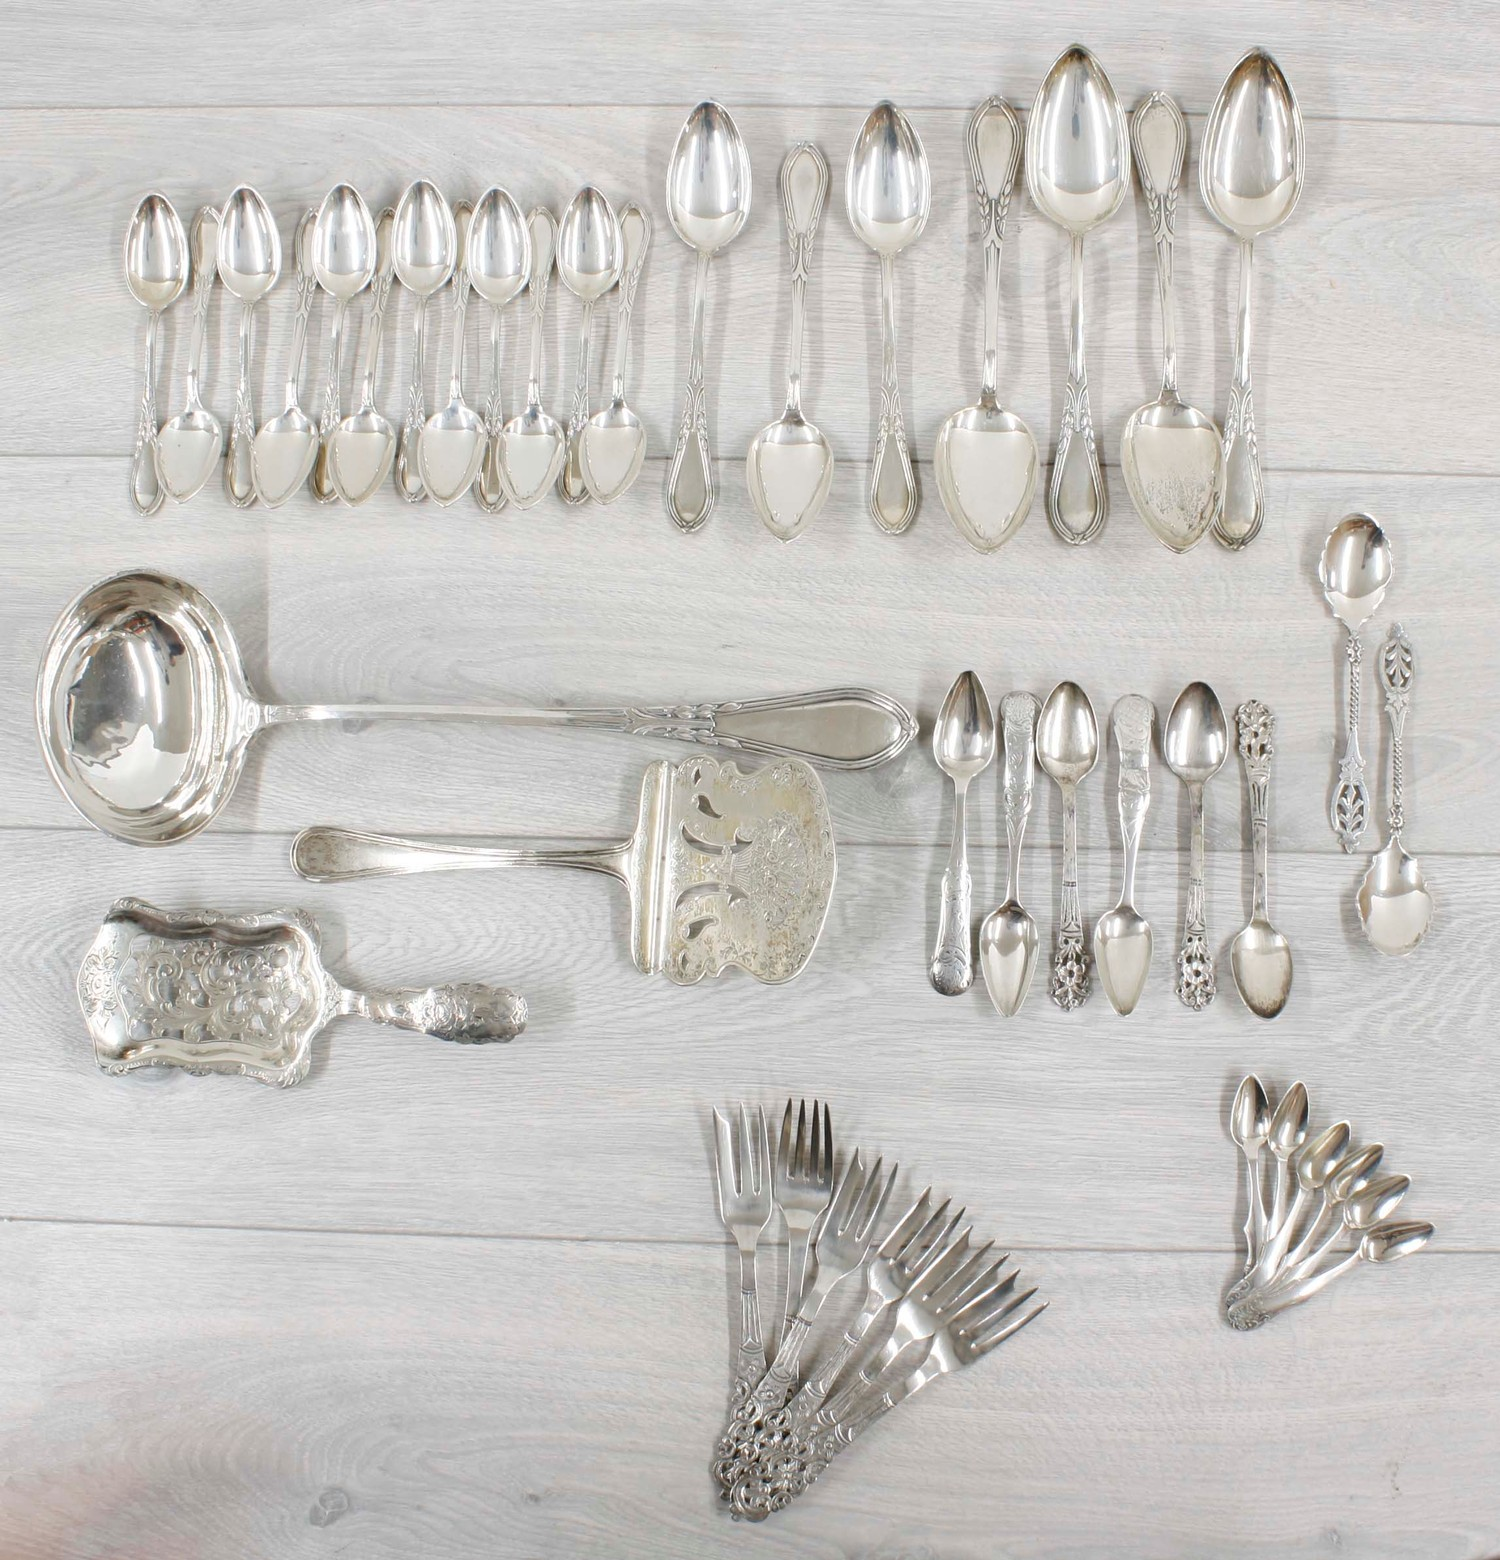 Selection of German 800 silver flatware; together with further Continental white metal flatware